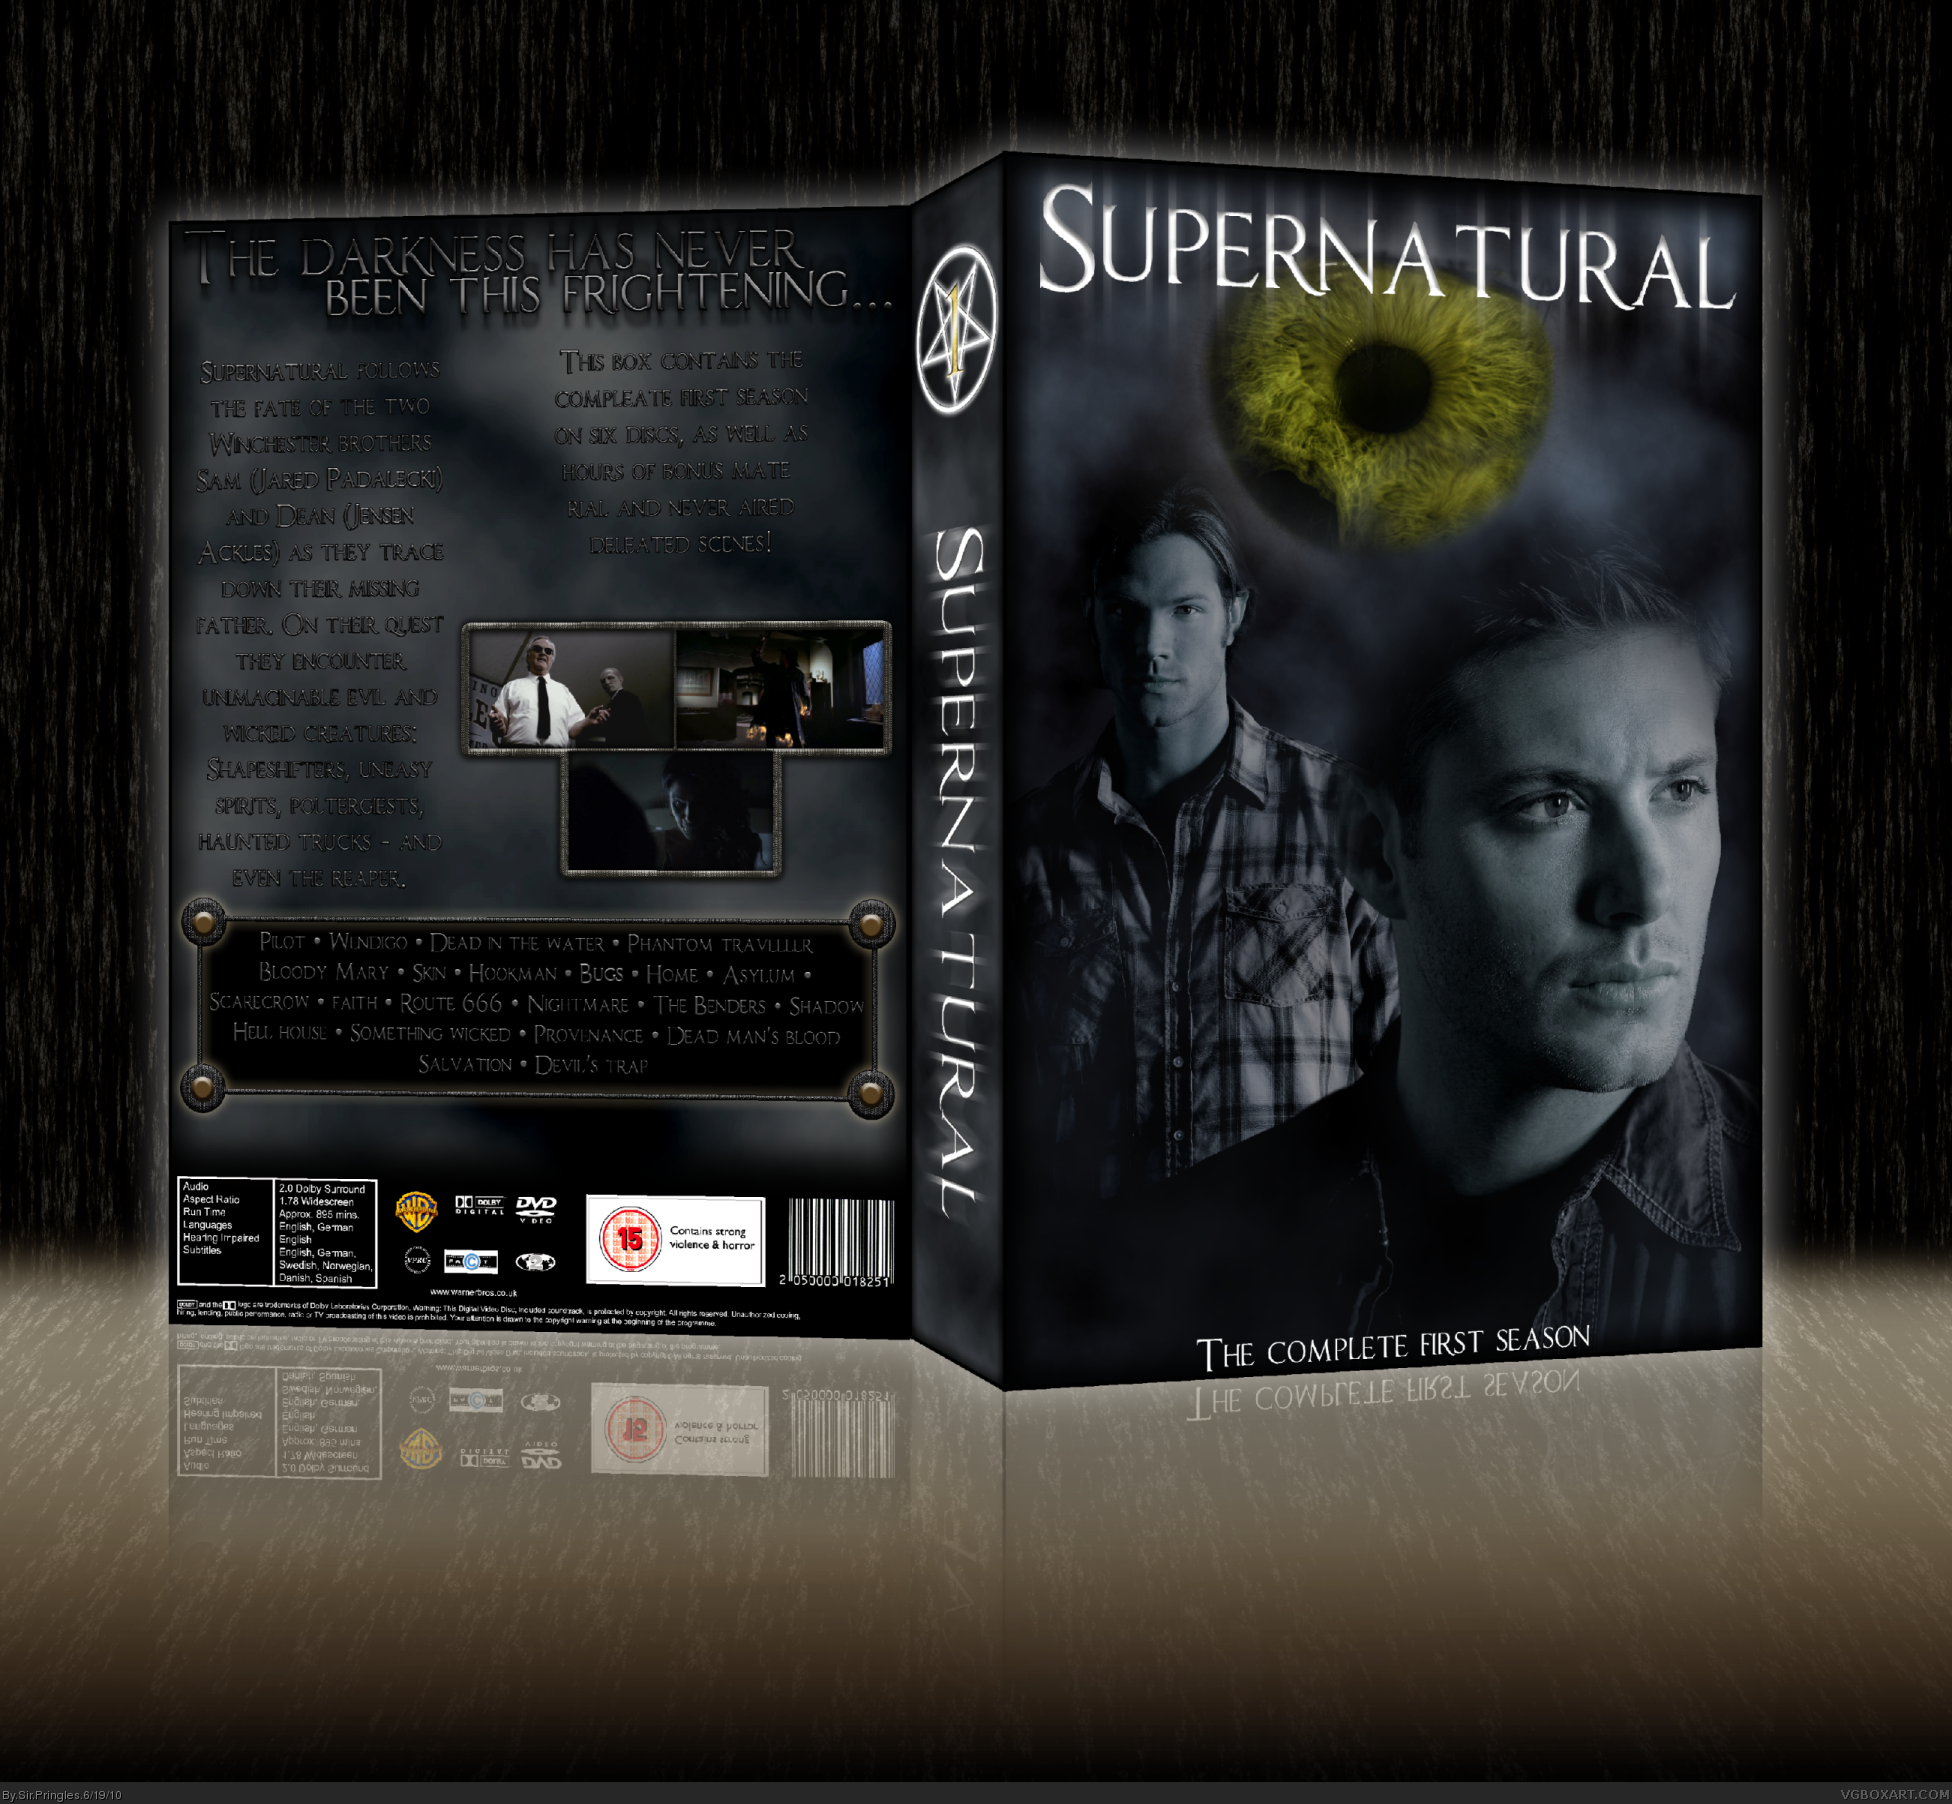 Supernatural - Season 1 box cover